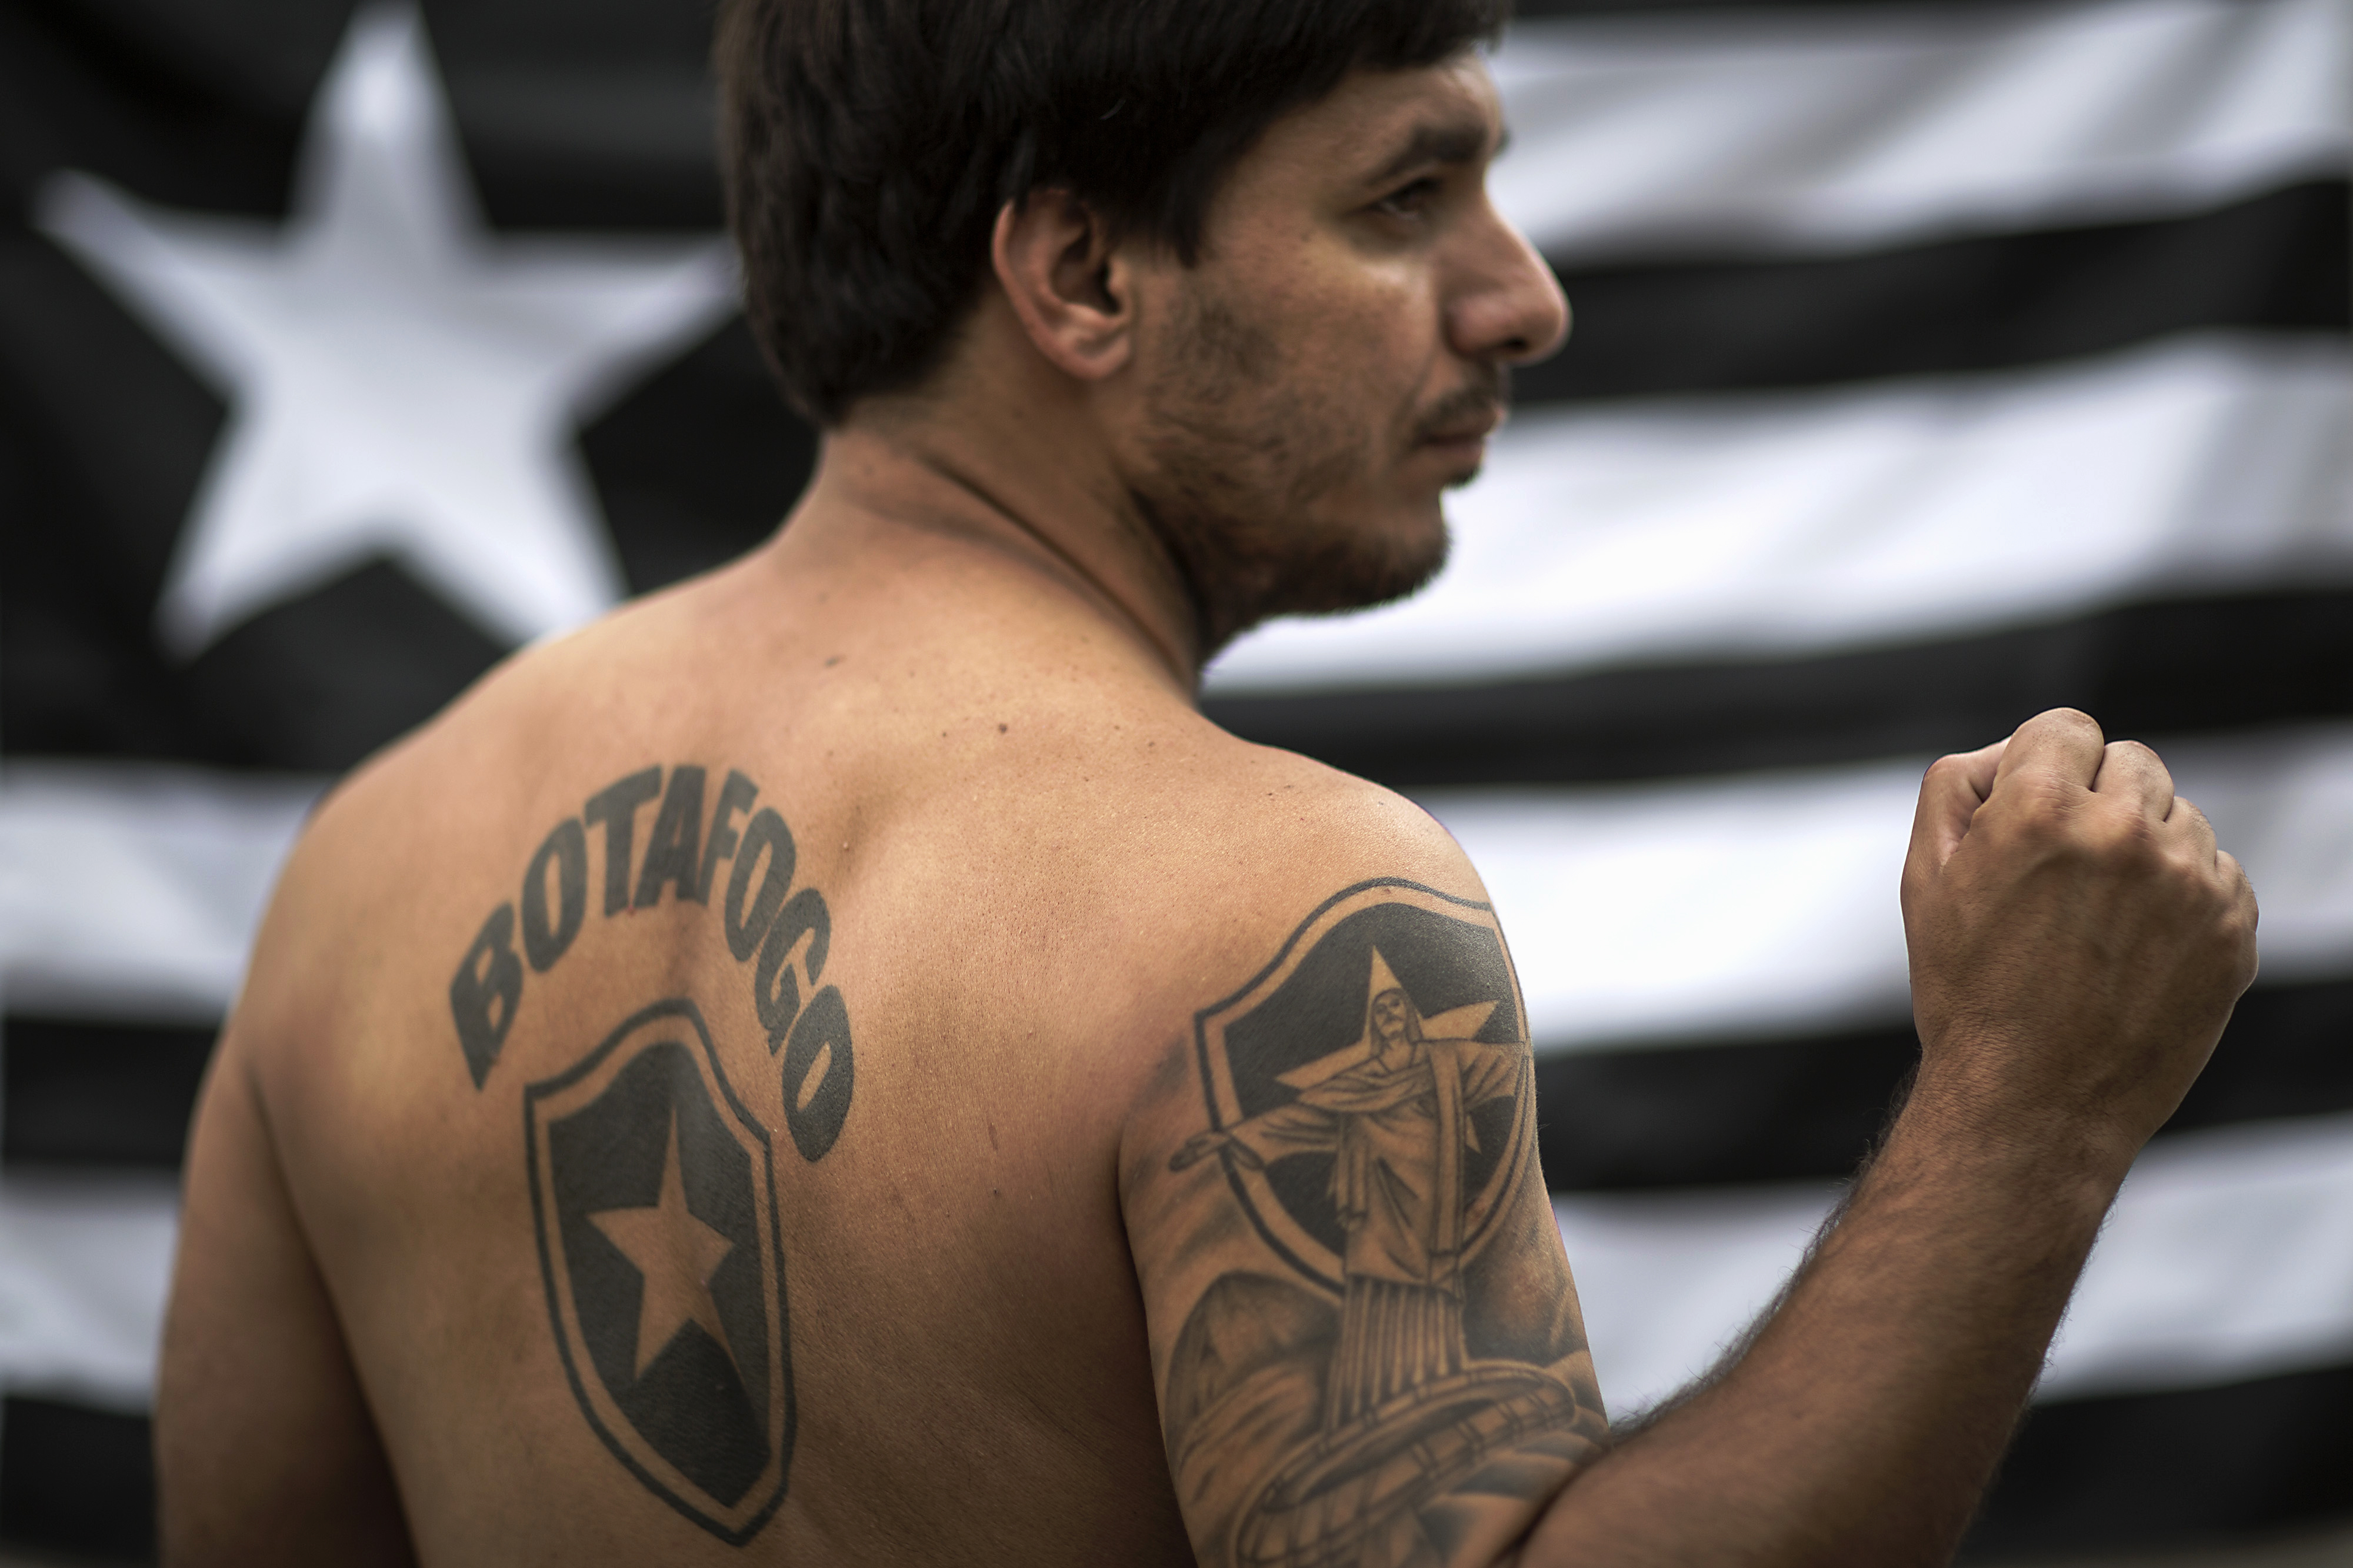 Carlos Eduardo poses for a photo showing his Botafogo's tattoos in Petropolis, Brazil on May 17, 2014.